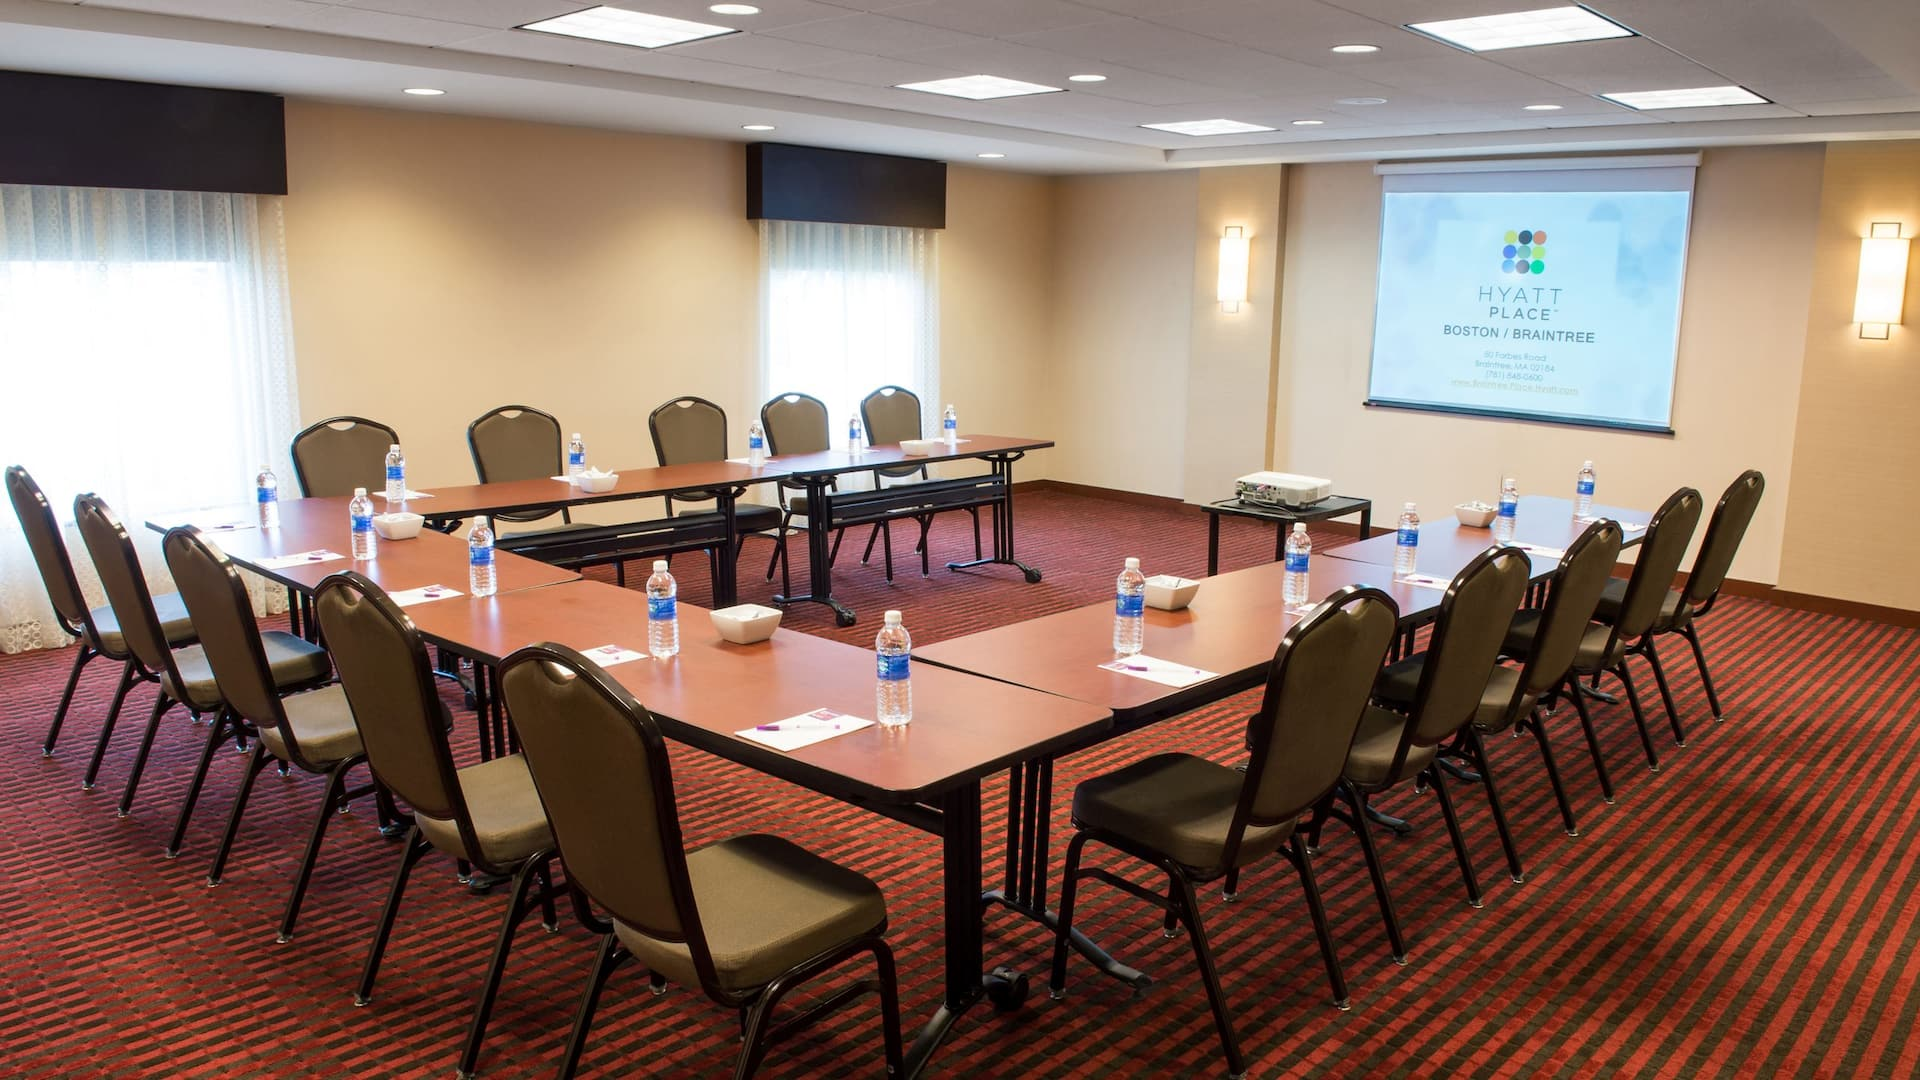 Hyatt Place Boston Braintree hotel meeting space